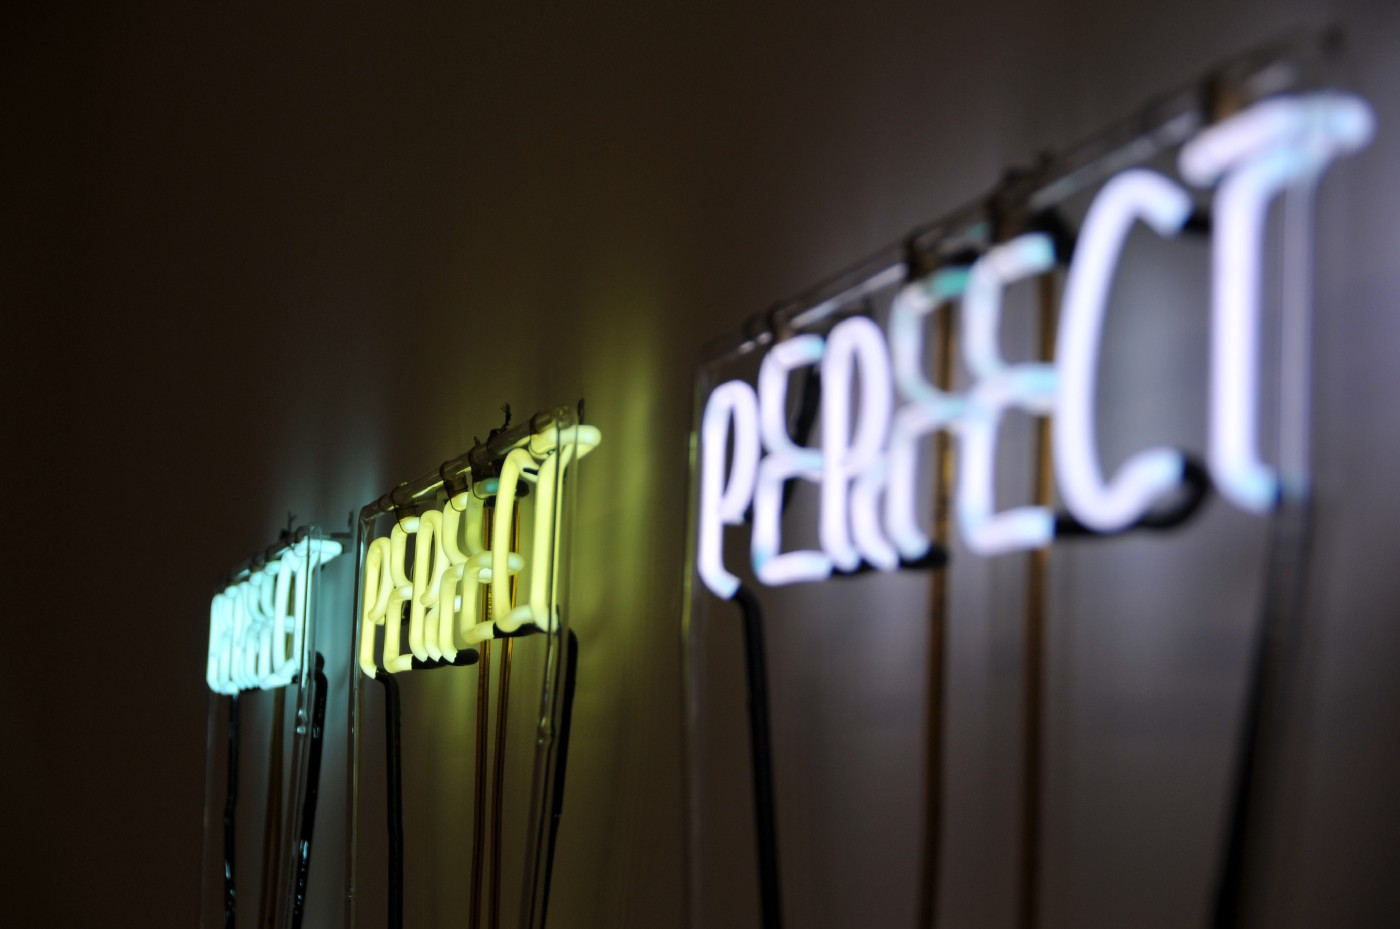 """Three neon signs that spell out """"Perfect"""""""